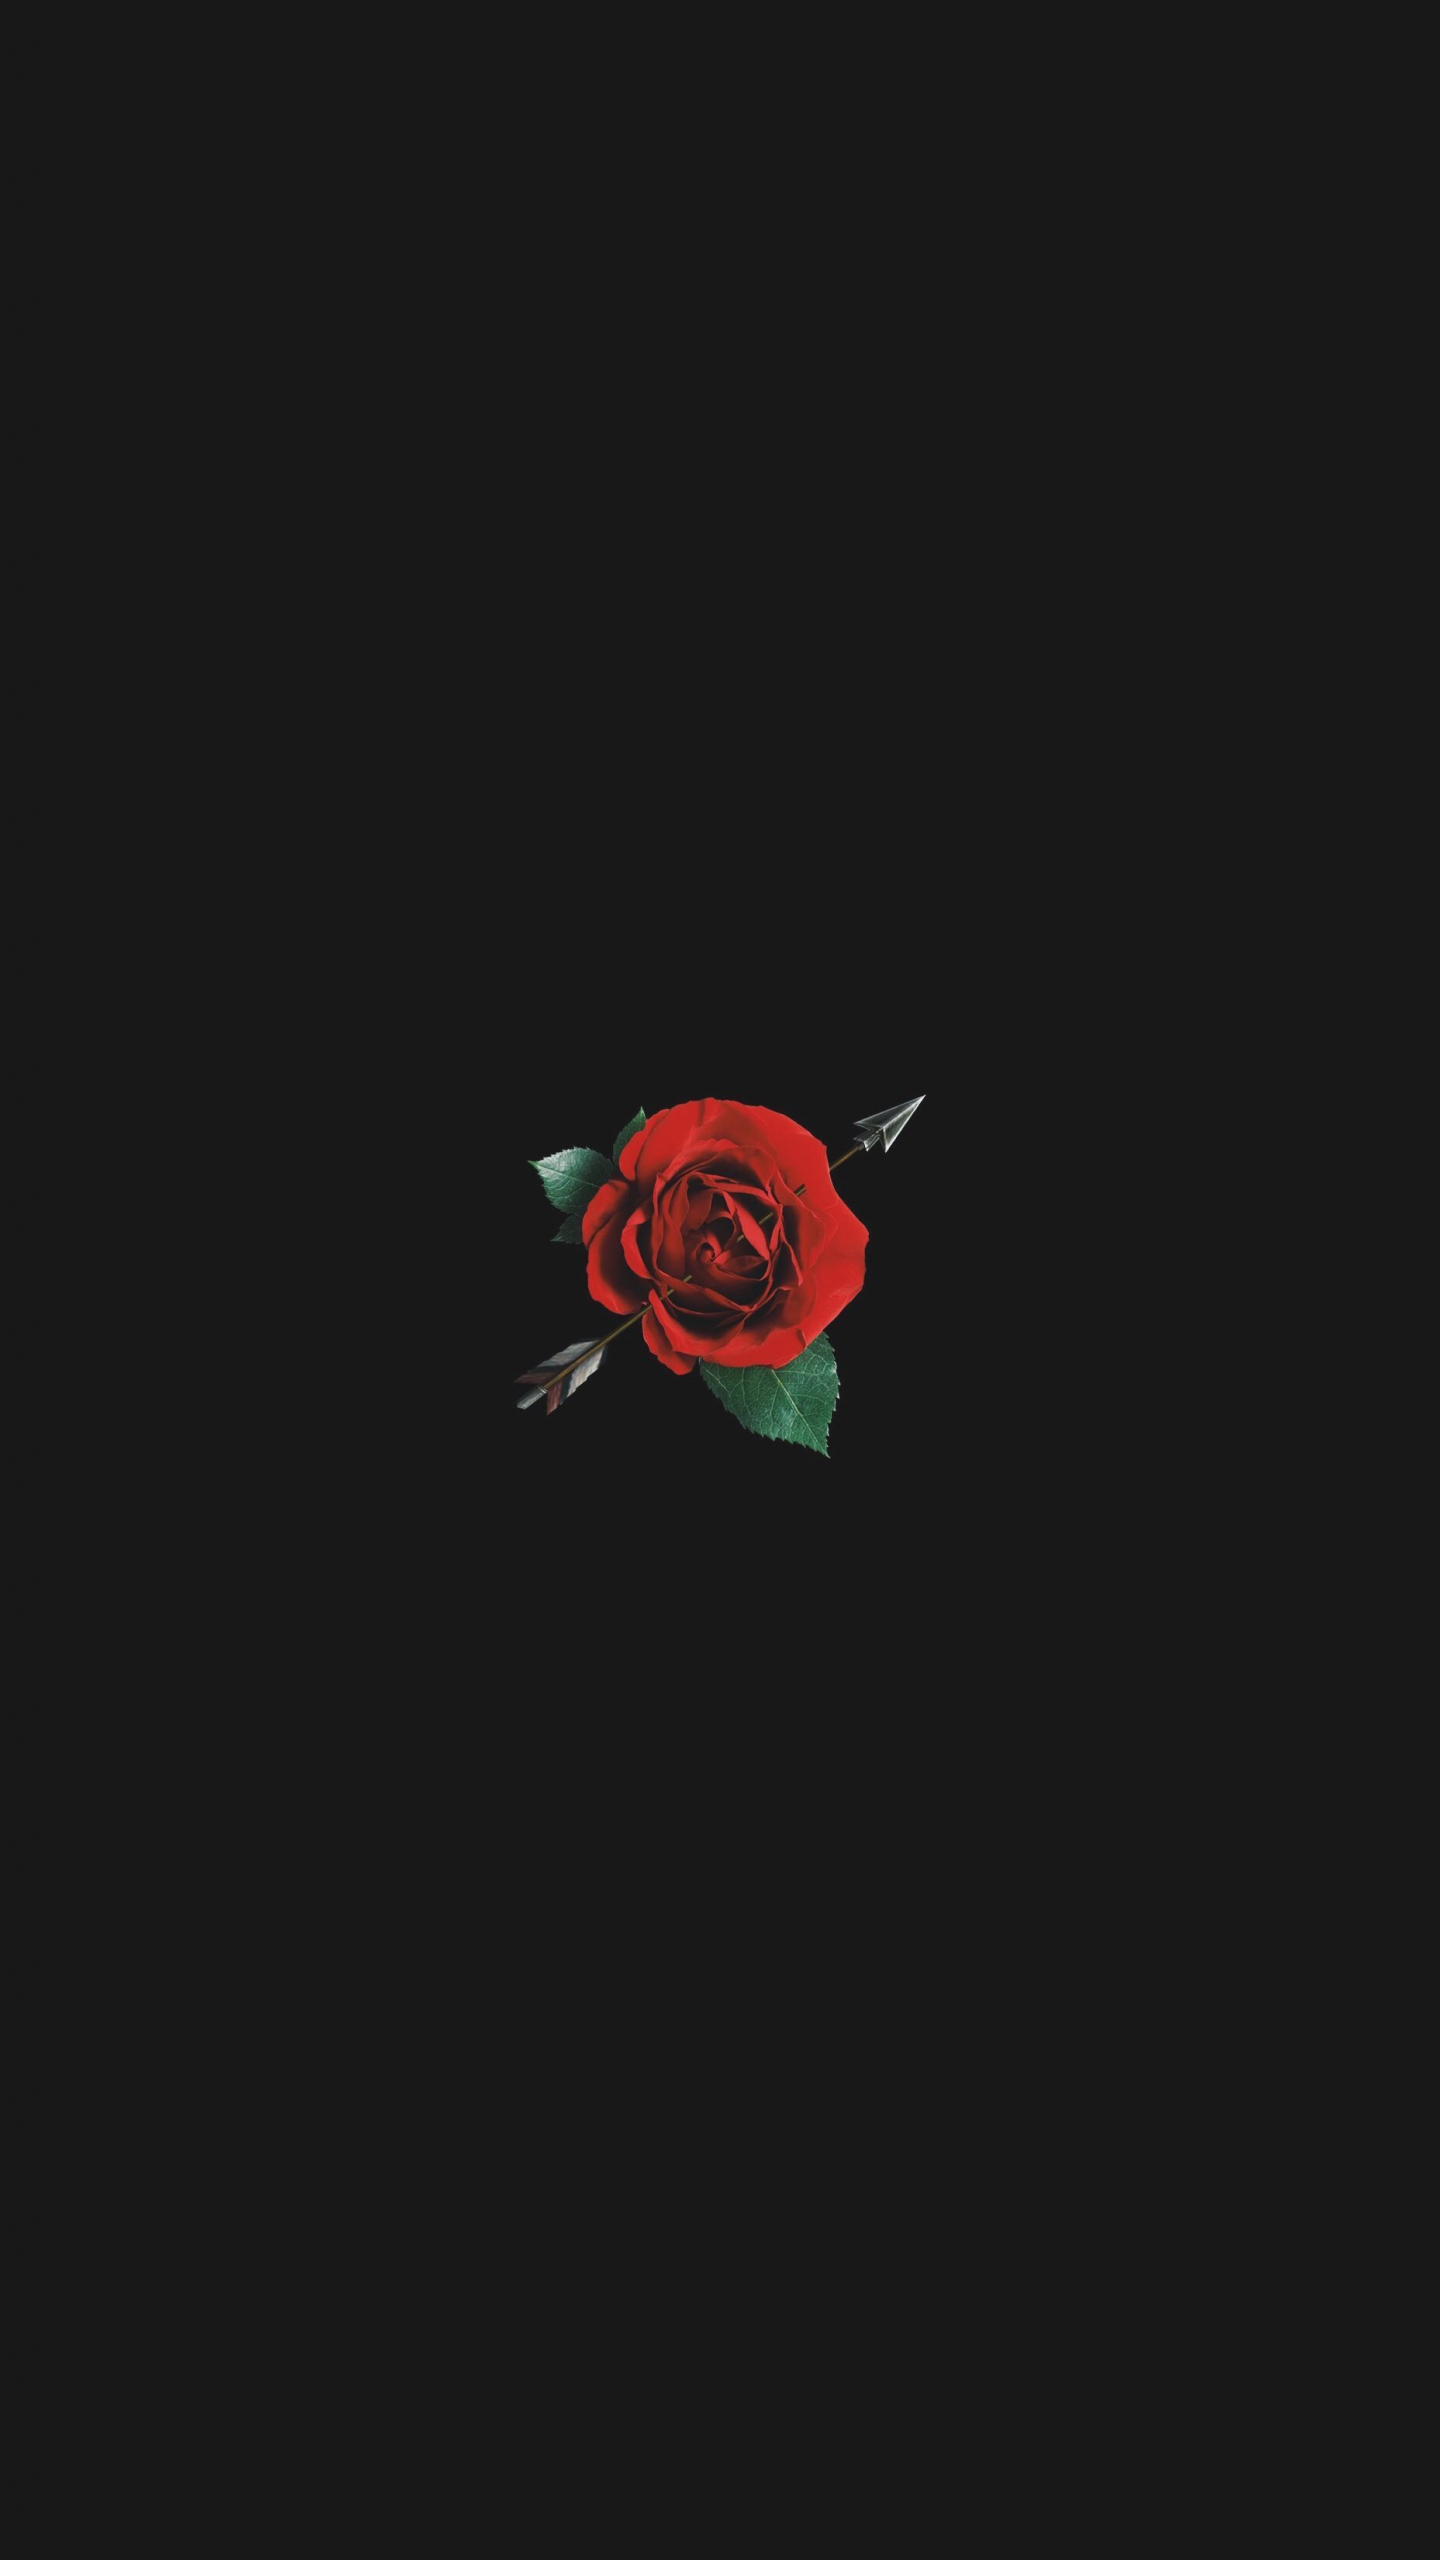 Free Download Aesthetic Red Rose With Black Background 2200x3300 For Your Desktop Mobile Tablet Explore 49 Red Roses Aesthetic Wallpapers Red Roses Aesthetic Wallpapers Red Aesthetic Wallpaper Wallpaper Red Roses